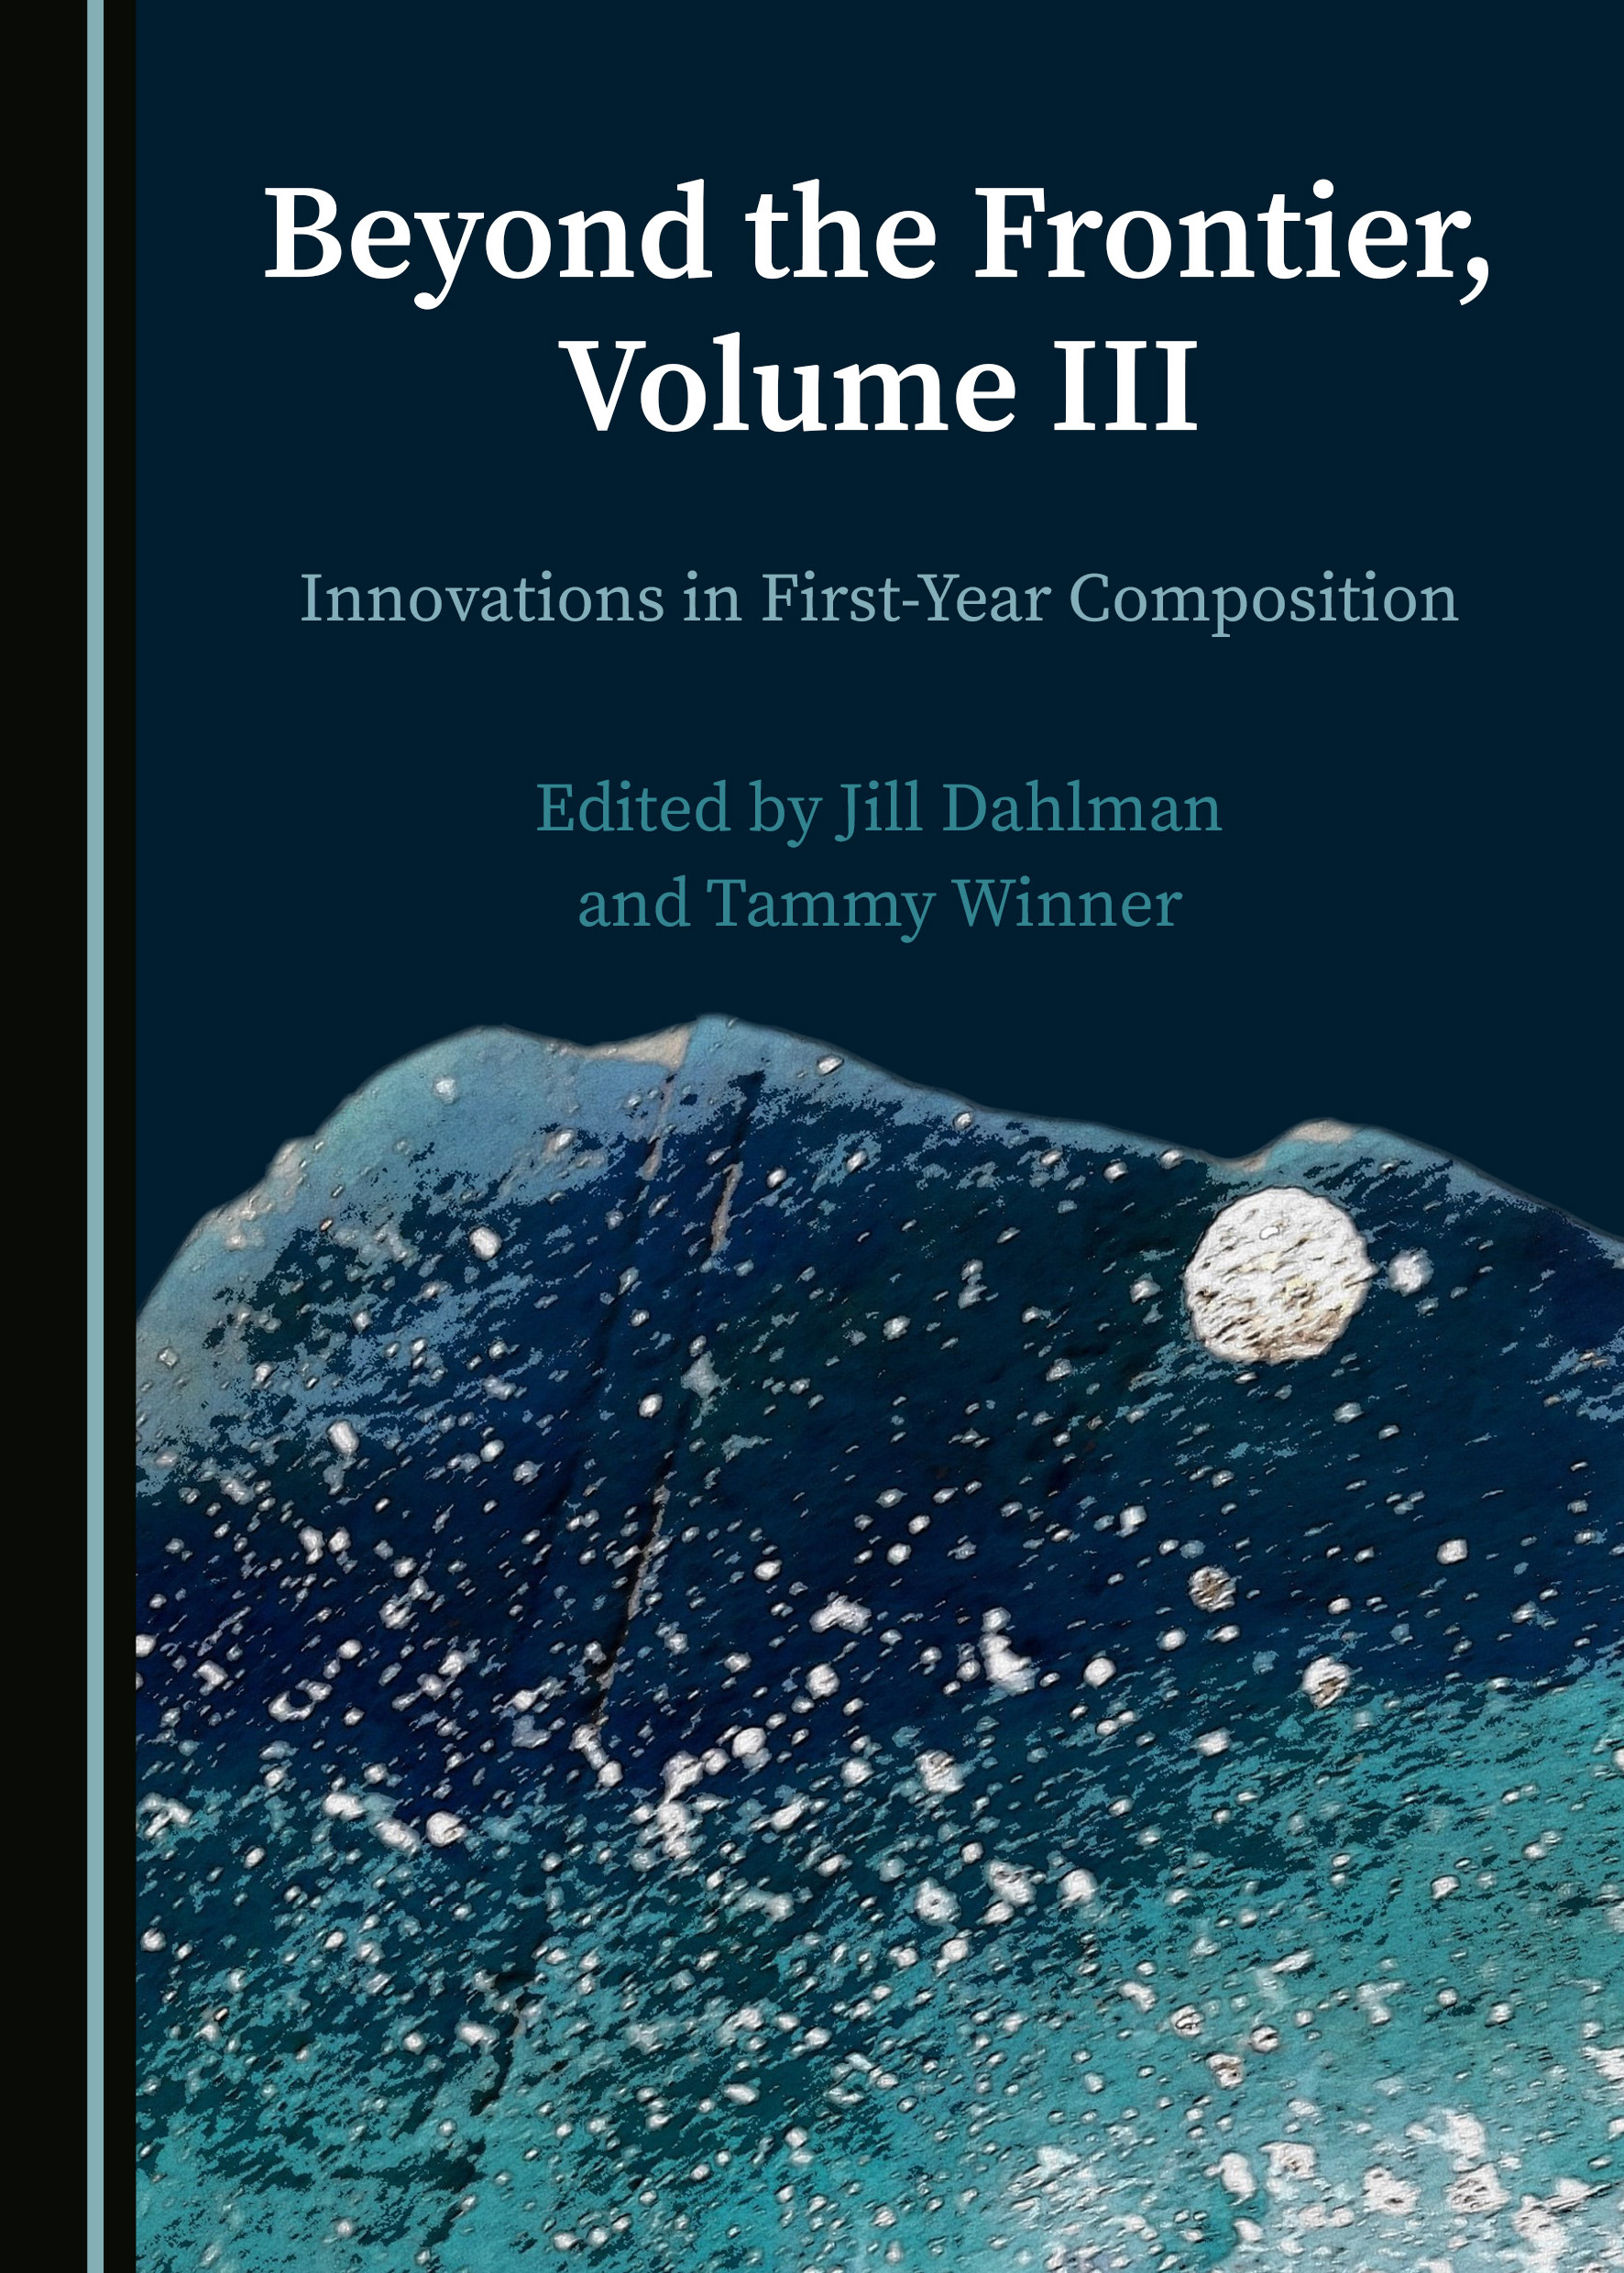 Beyond the Frontier, Volume III: Innovations in First-Year Composition